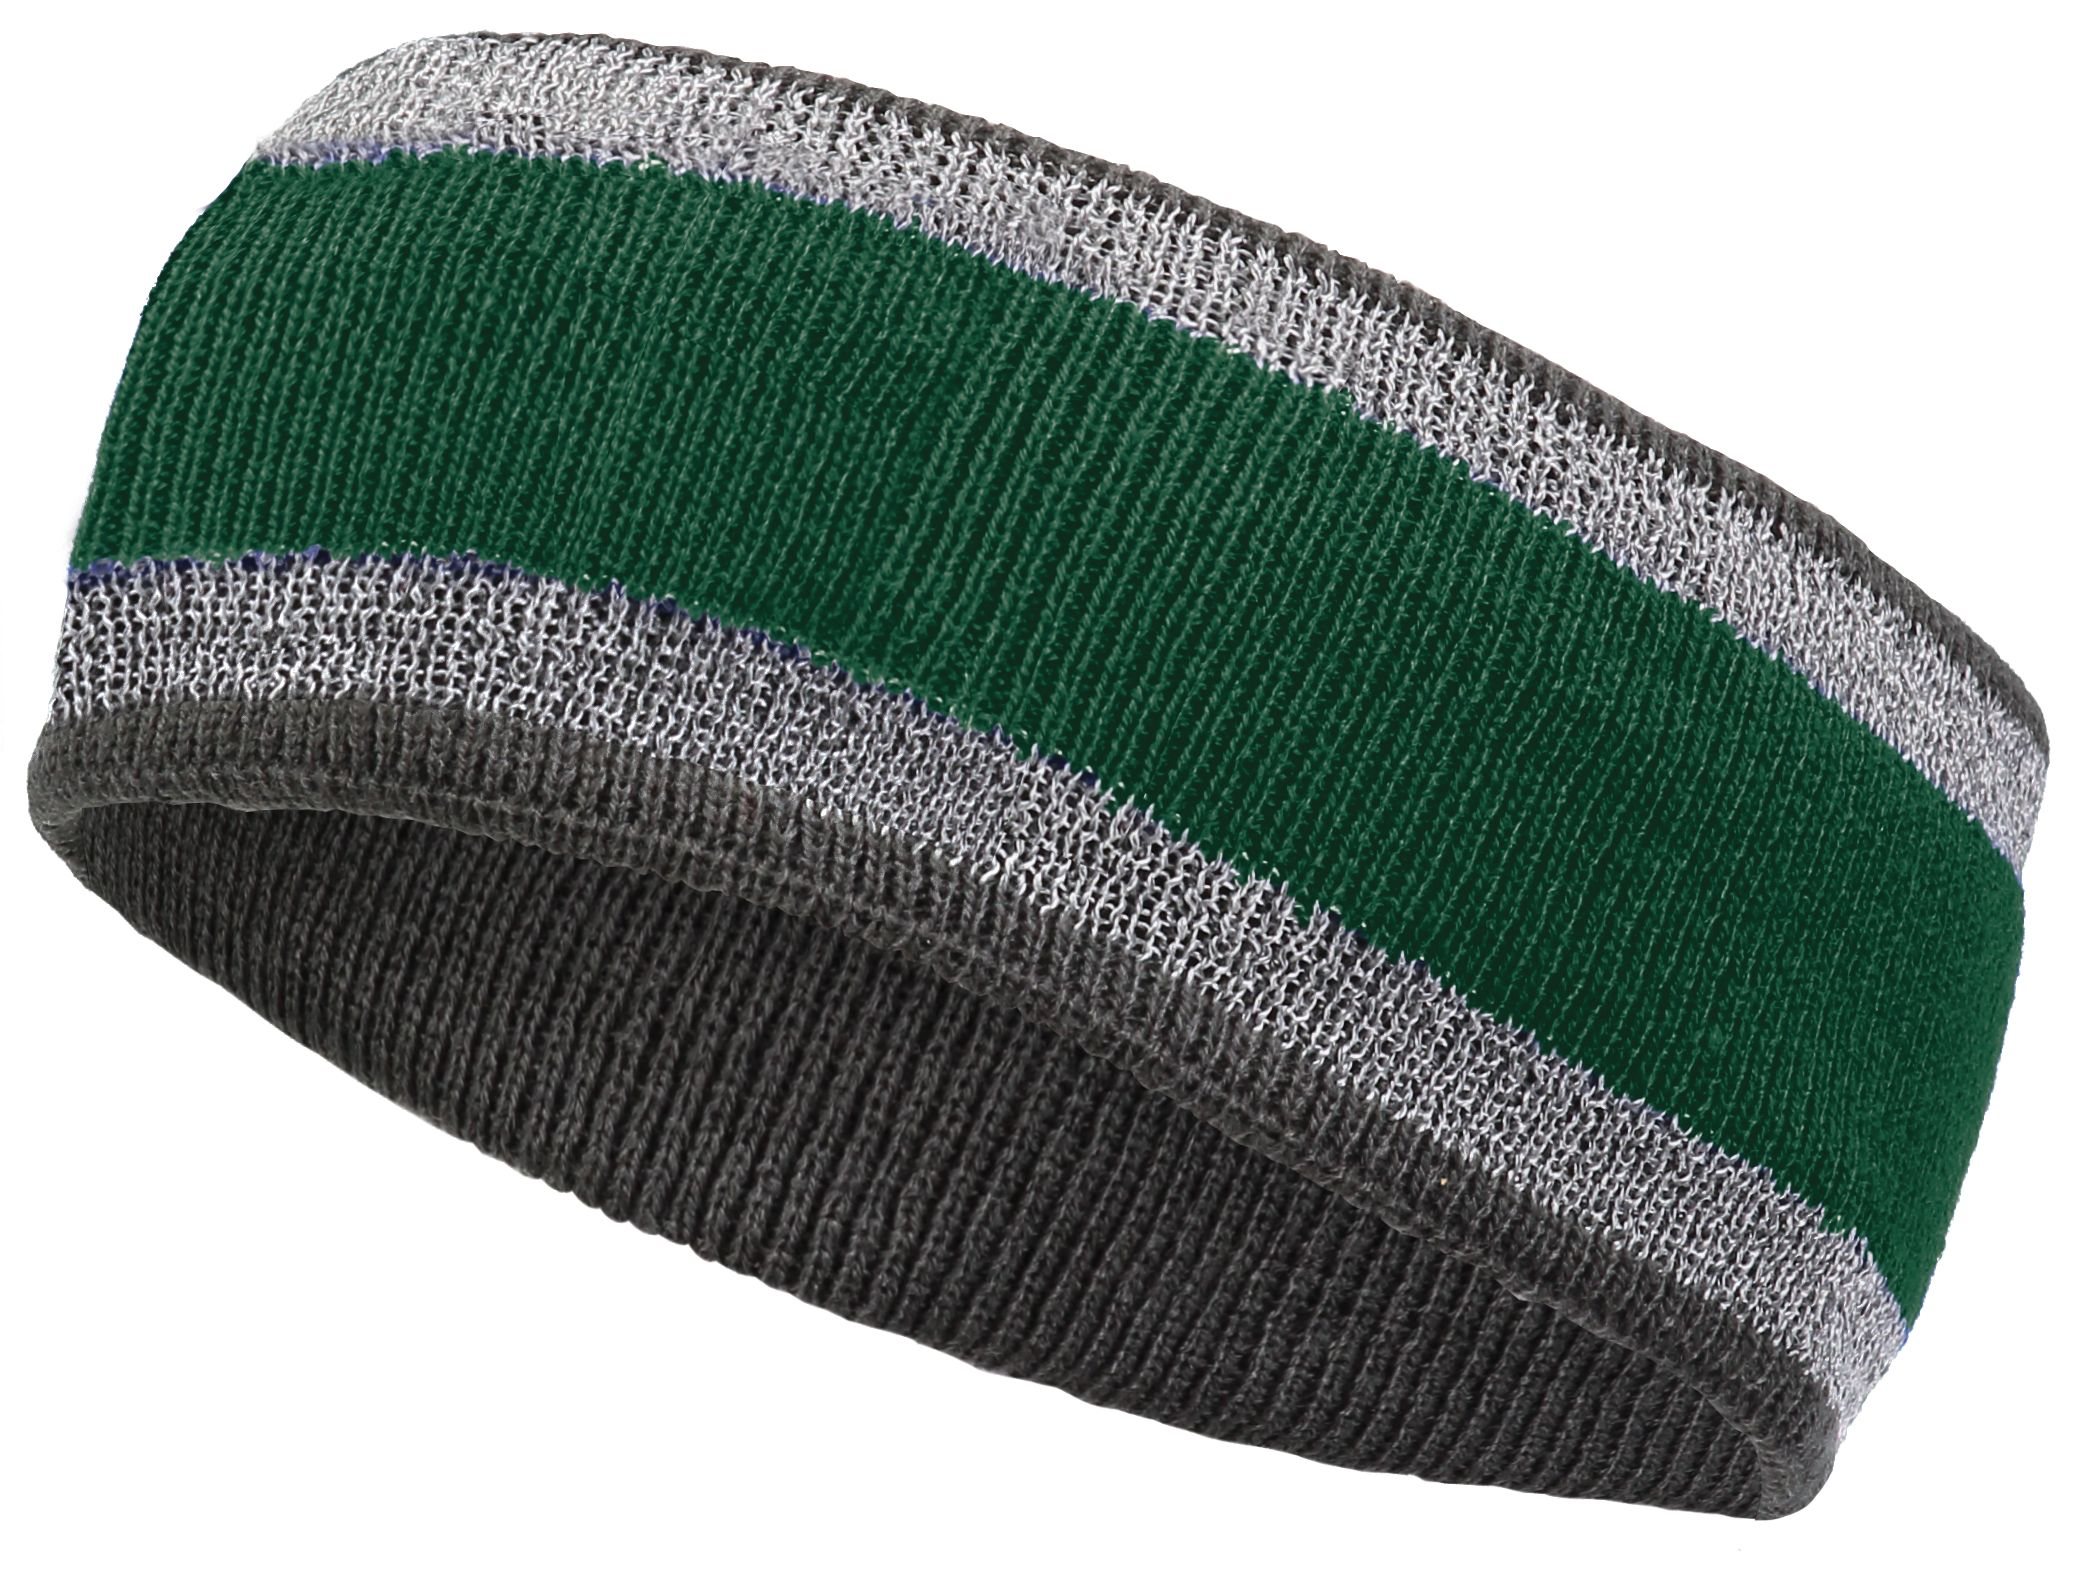 Reflective Headband - FOREST/CARBON